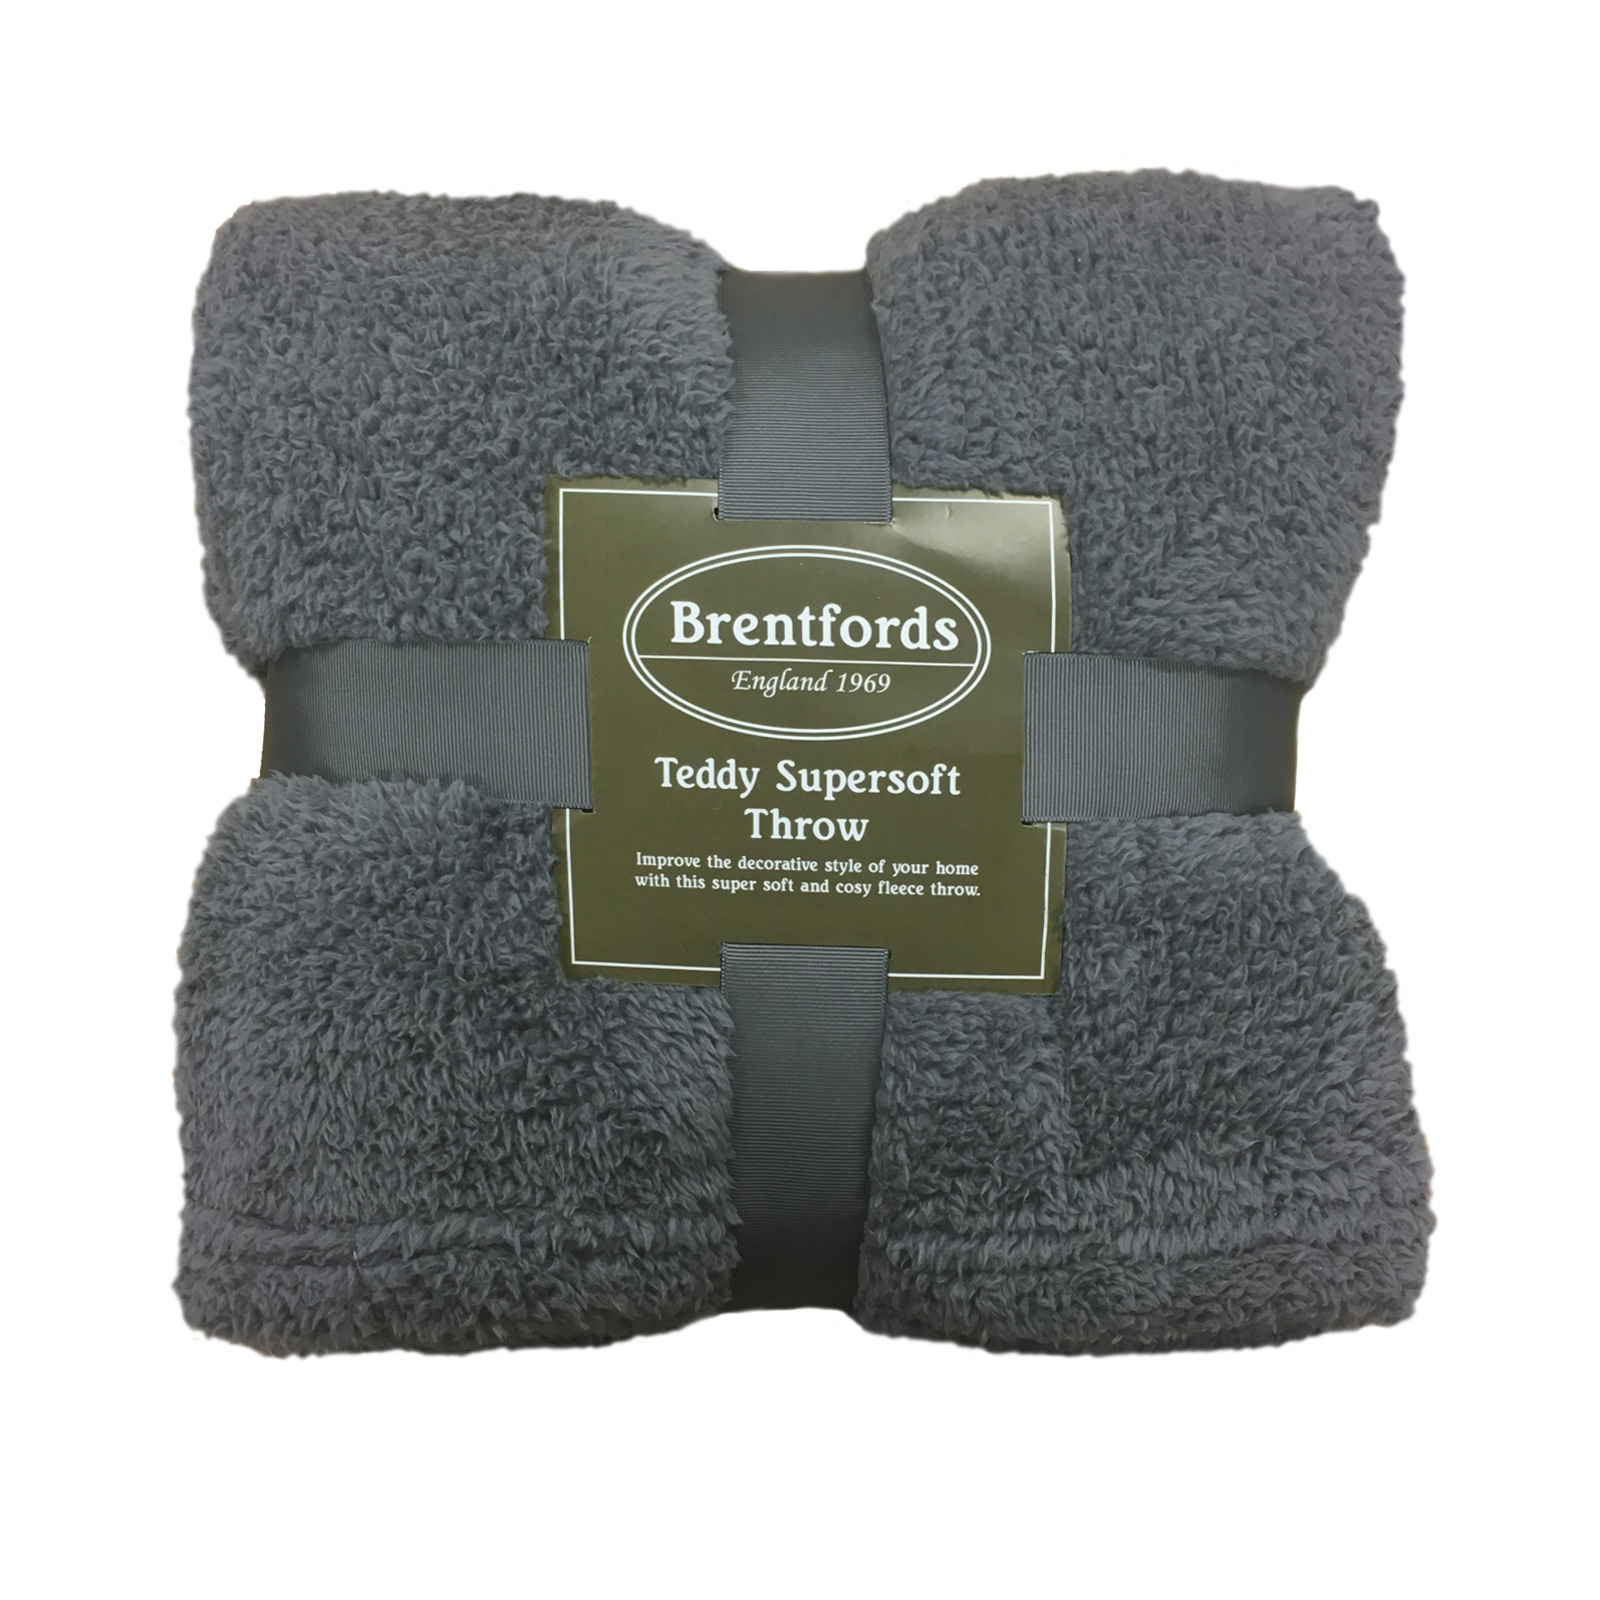 Brentfords-Teddy-Fleece-Blanket-Large-Throw-Over-Bed-Plush-Soft-Bedspread-Grey